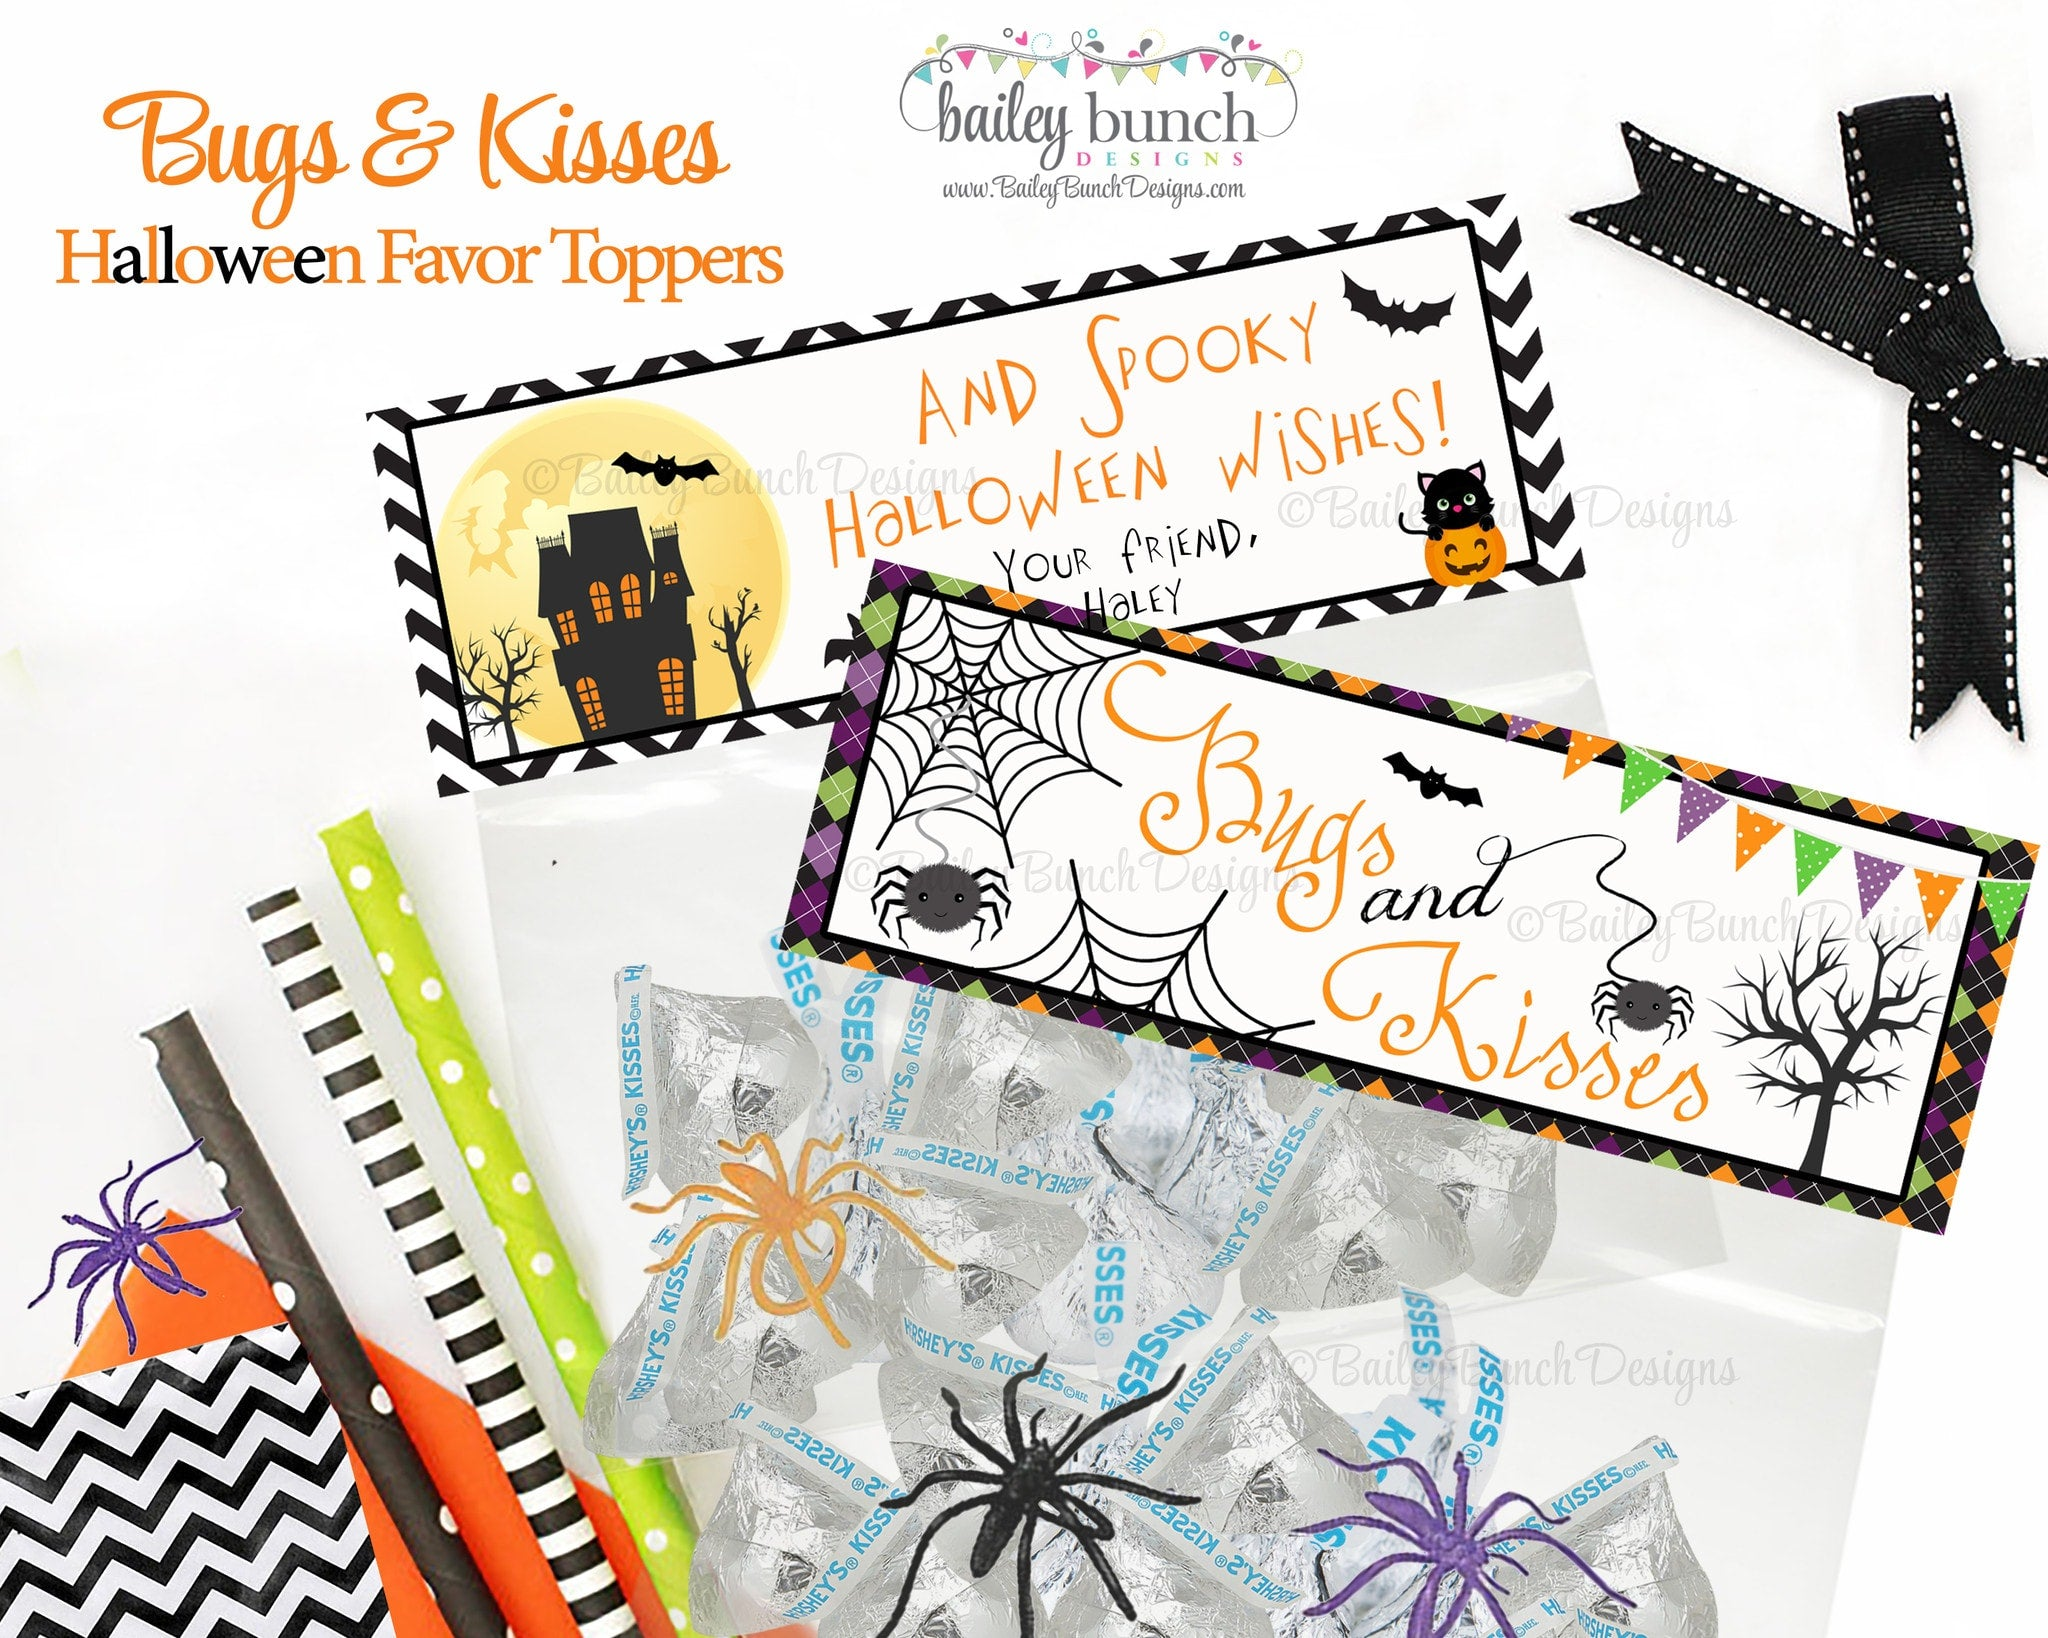 photograph relating to Bugs and Kisses Printable titled Halloween Insects and Kisses Desire Toppers - Tailored - 2 Programs!! BUGKISSFVR0520